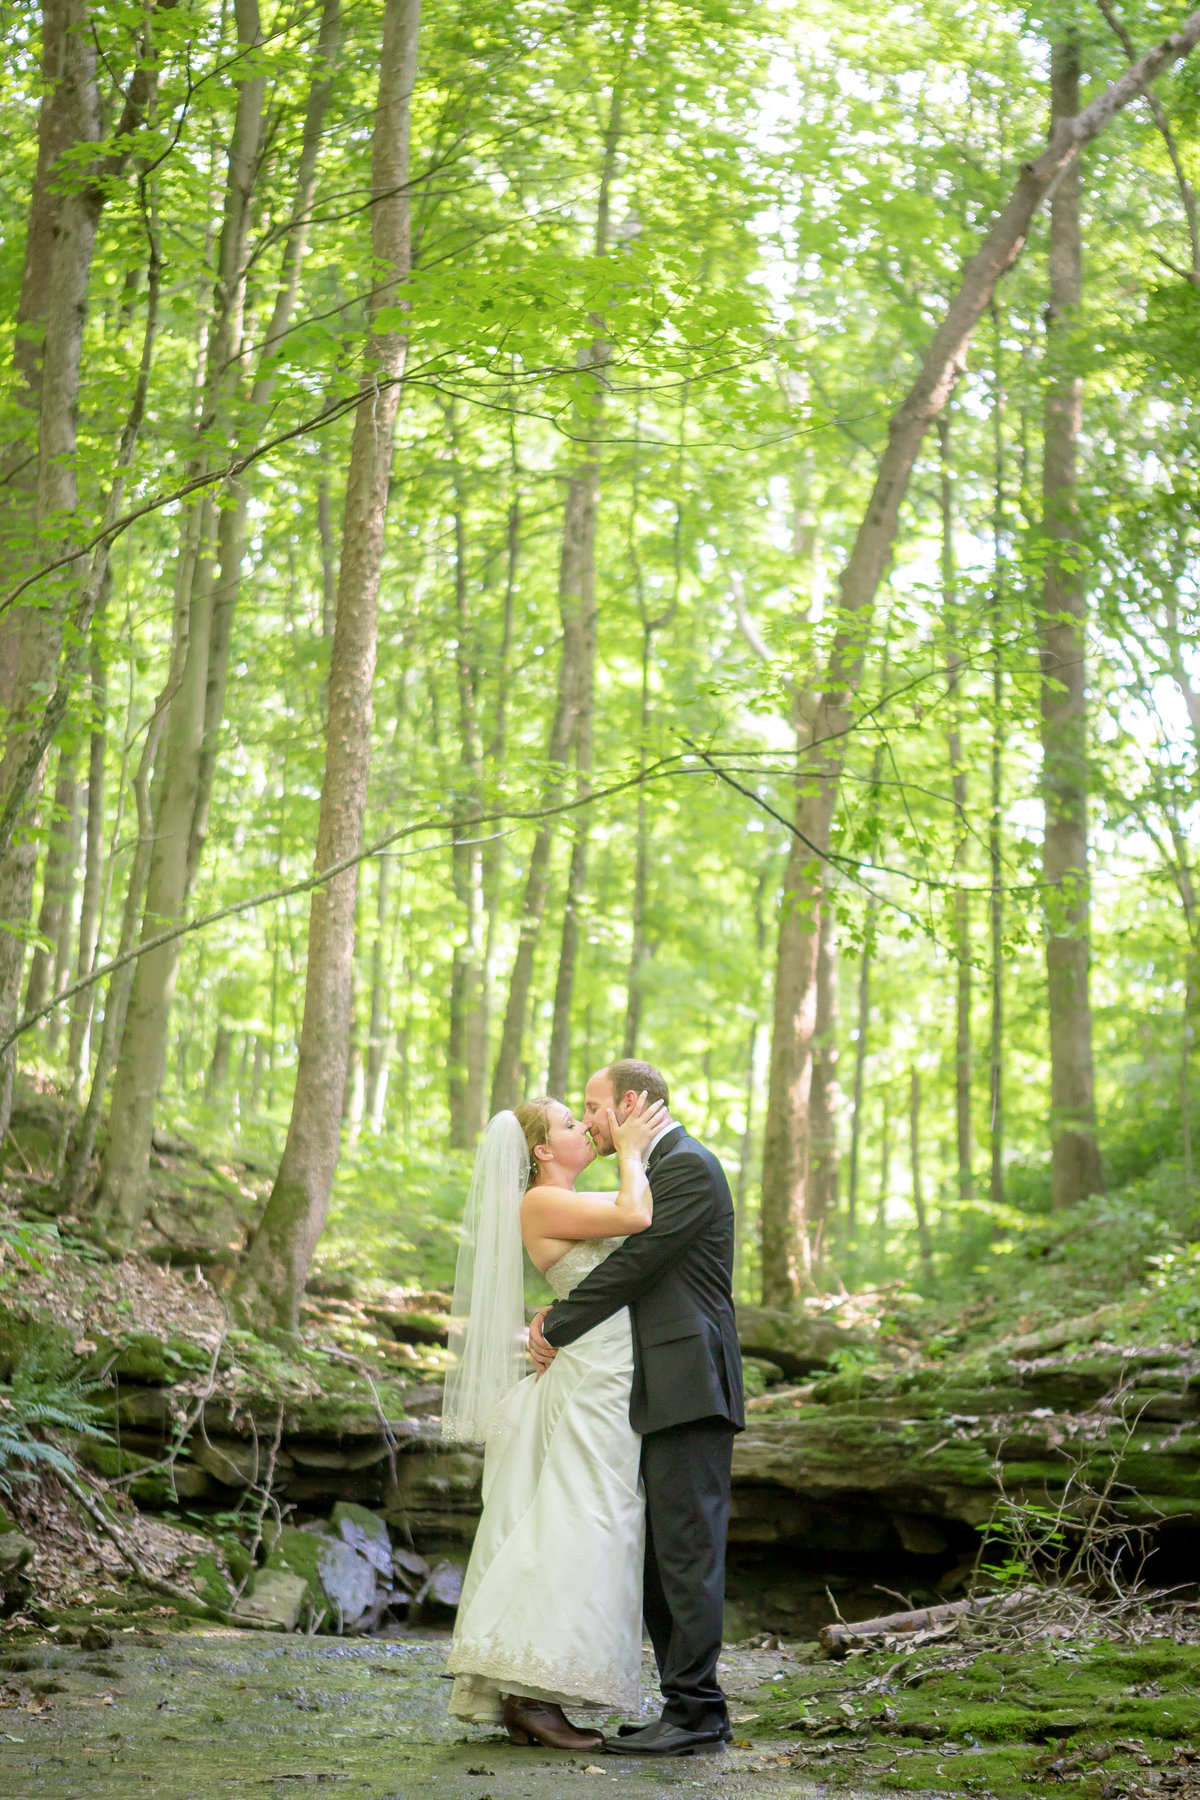 Brandt-Anna-Southern-Indiana-Barn-Wedding-Waterfall-woods-forest-rural-stream-trees-diy-photography-1a